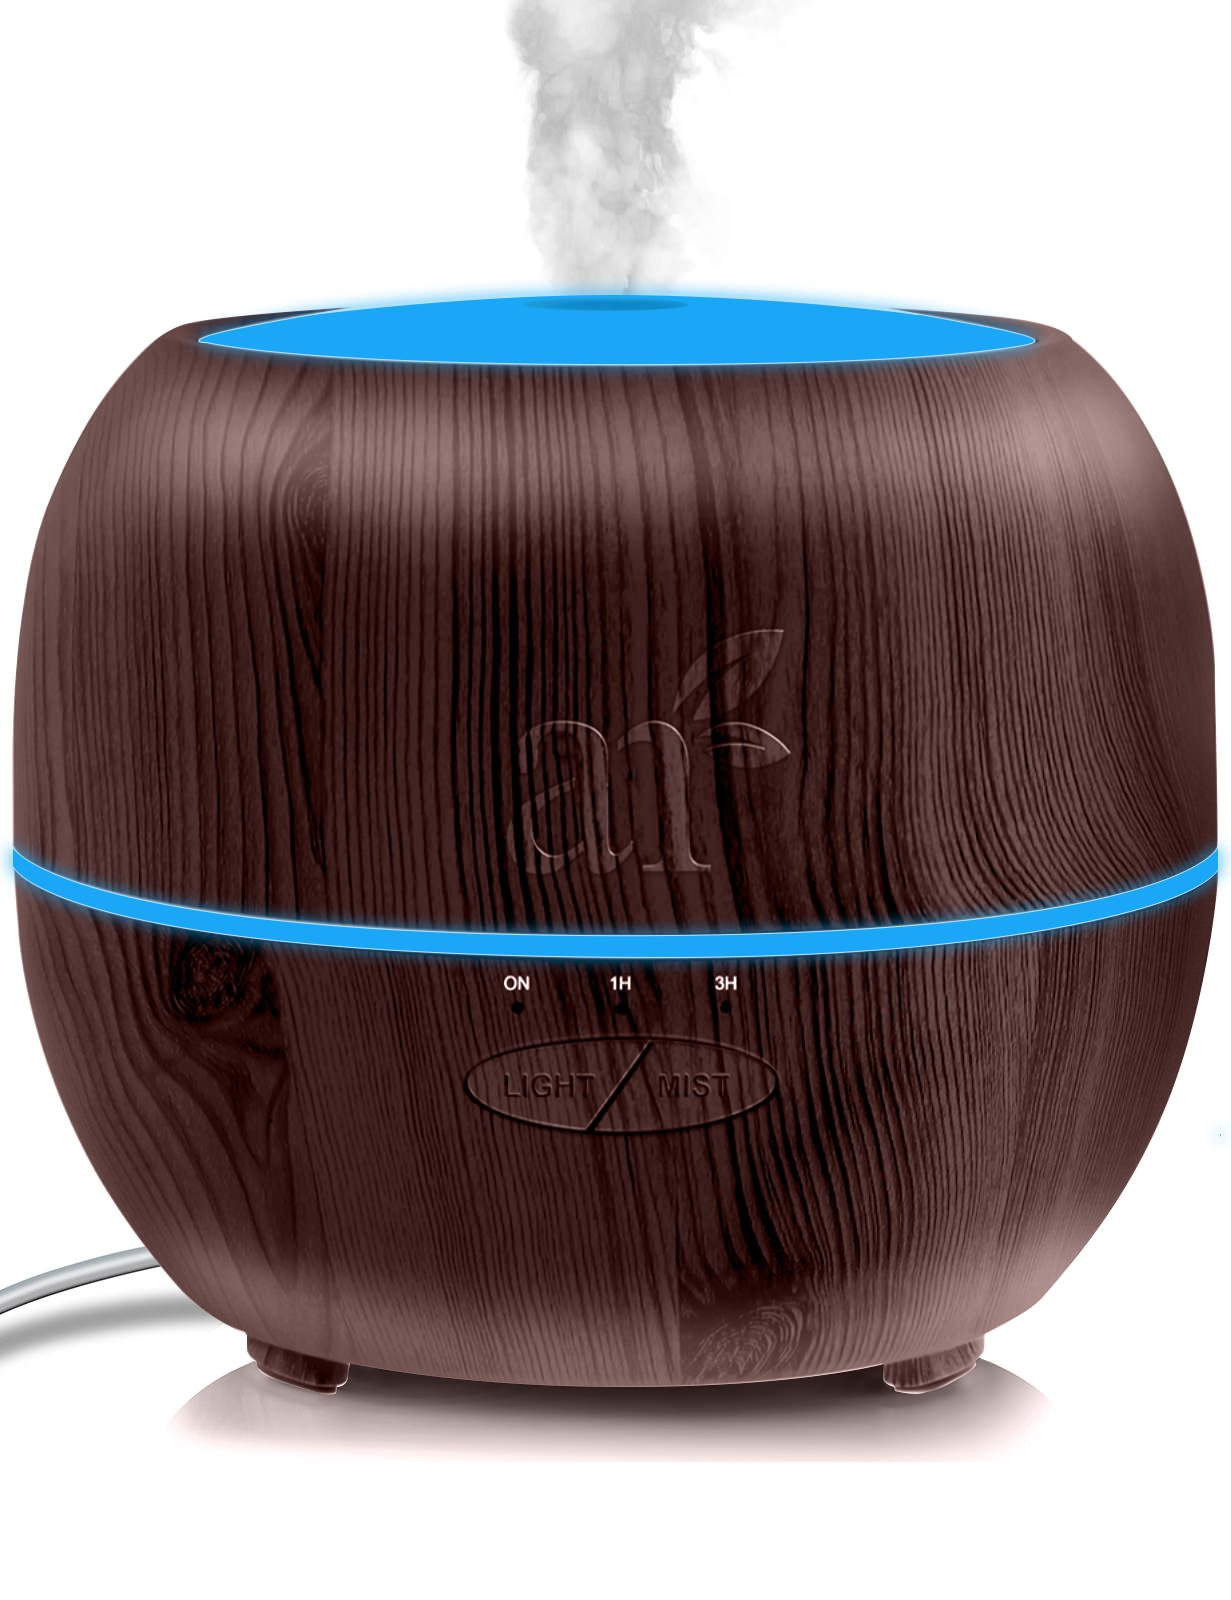 ArtNaturals Aromatherapy Essential Oil Diffuser – (13.5 Fl Oz/400ml Tank - Dark Brown) – Ultrasonic Aroma Humidifier - Auto Shut-Off and 7 Color LED Lights – For Home, Office & Bedroom